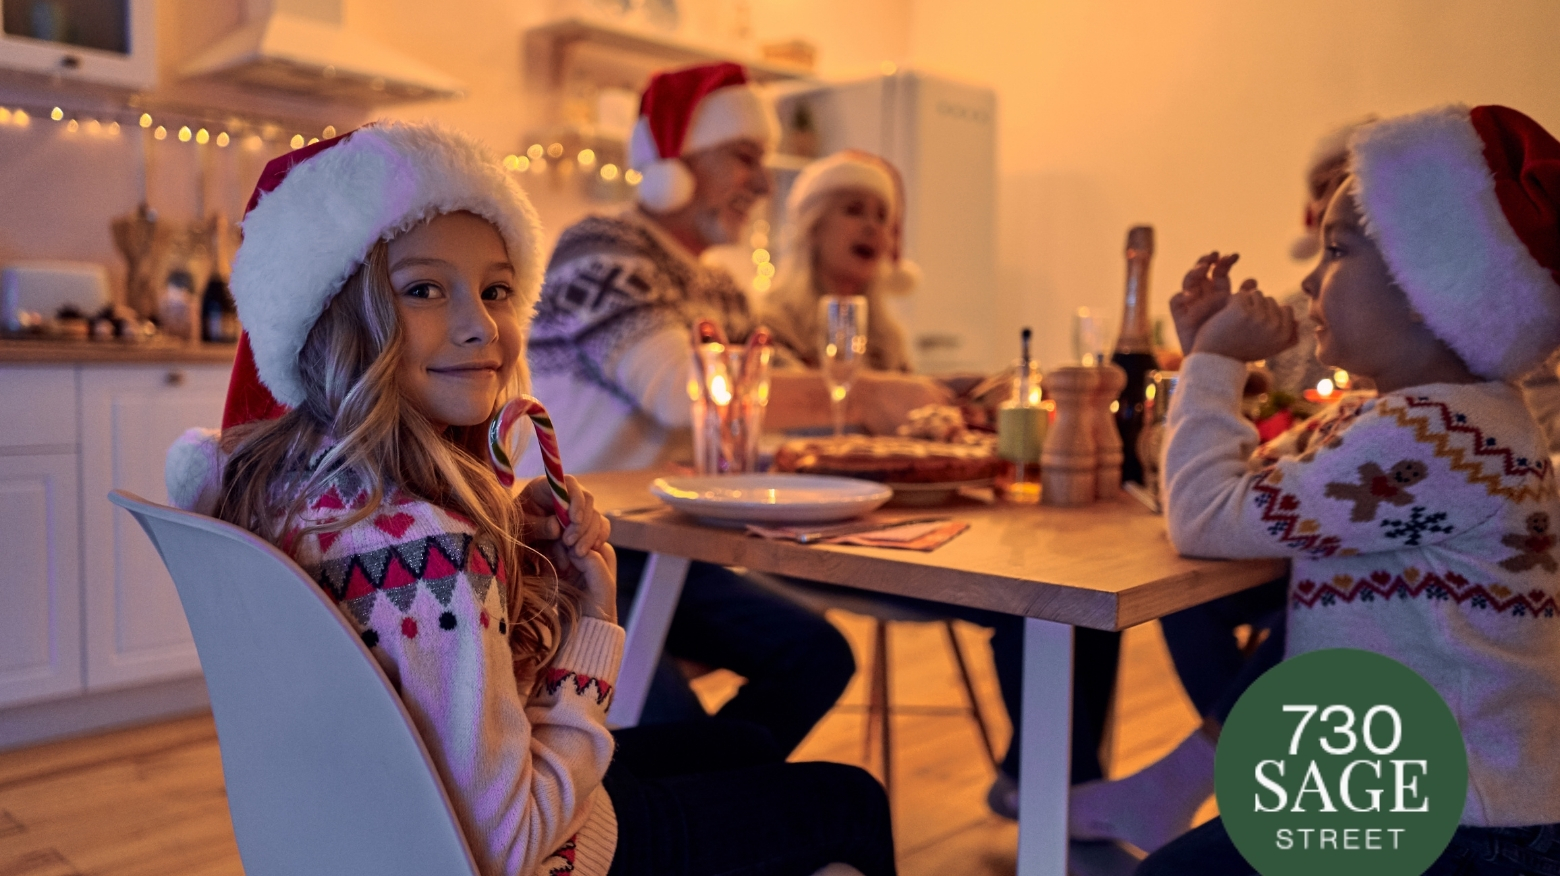 Girl smiling, sitting at dinner table, wearing Christmas clothes and excited to eat Xmas Dinner.